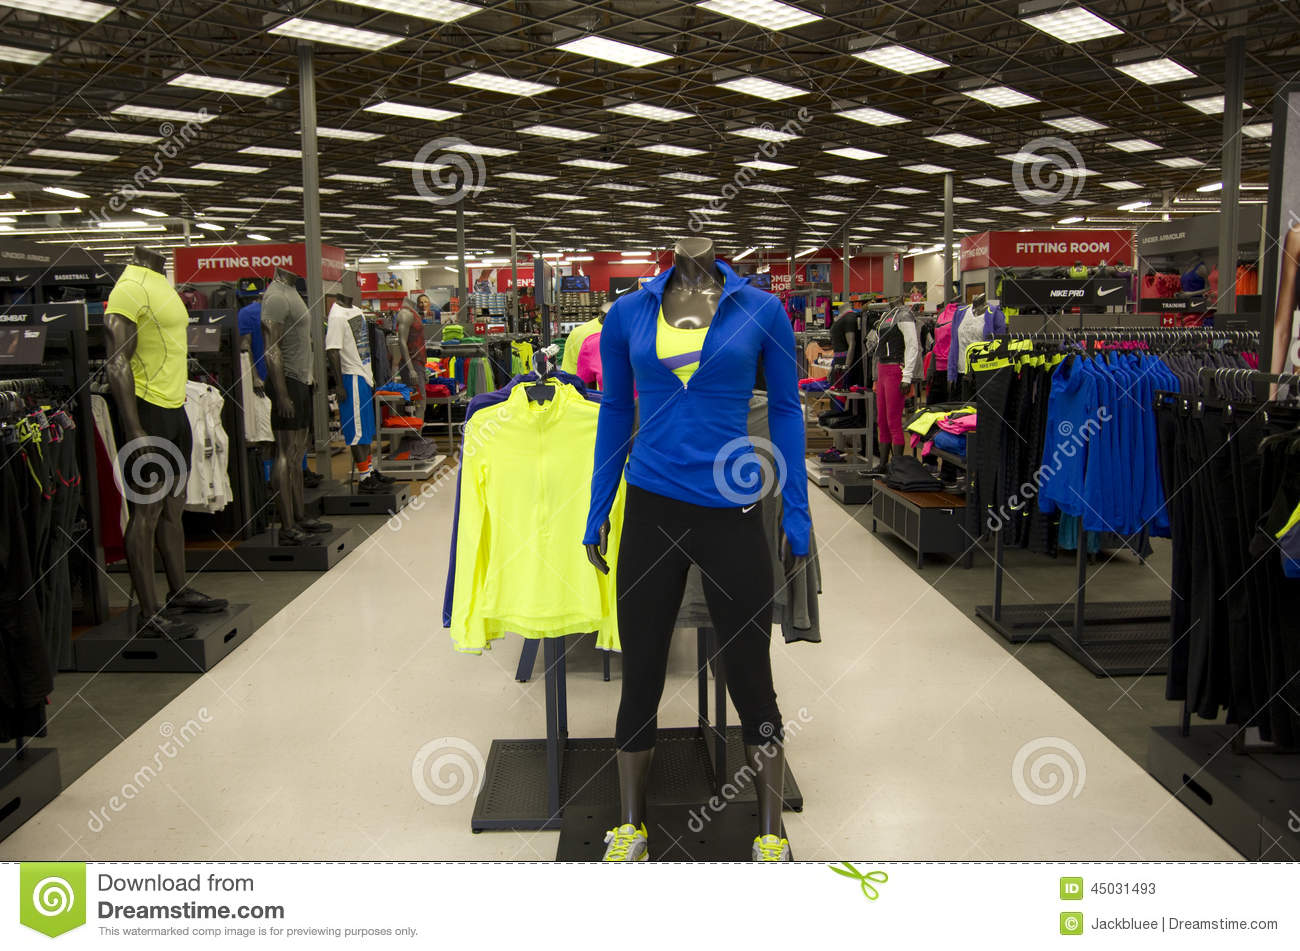 Sporting clothes stores near me